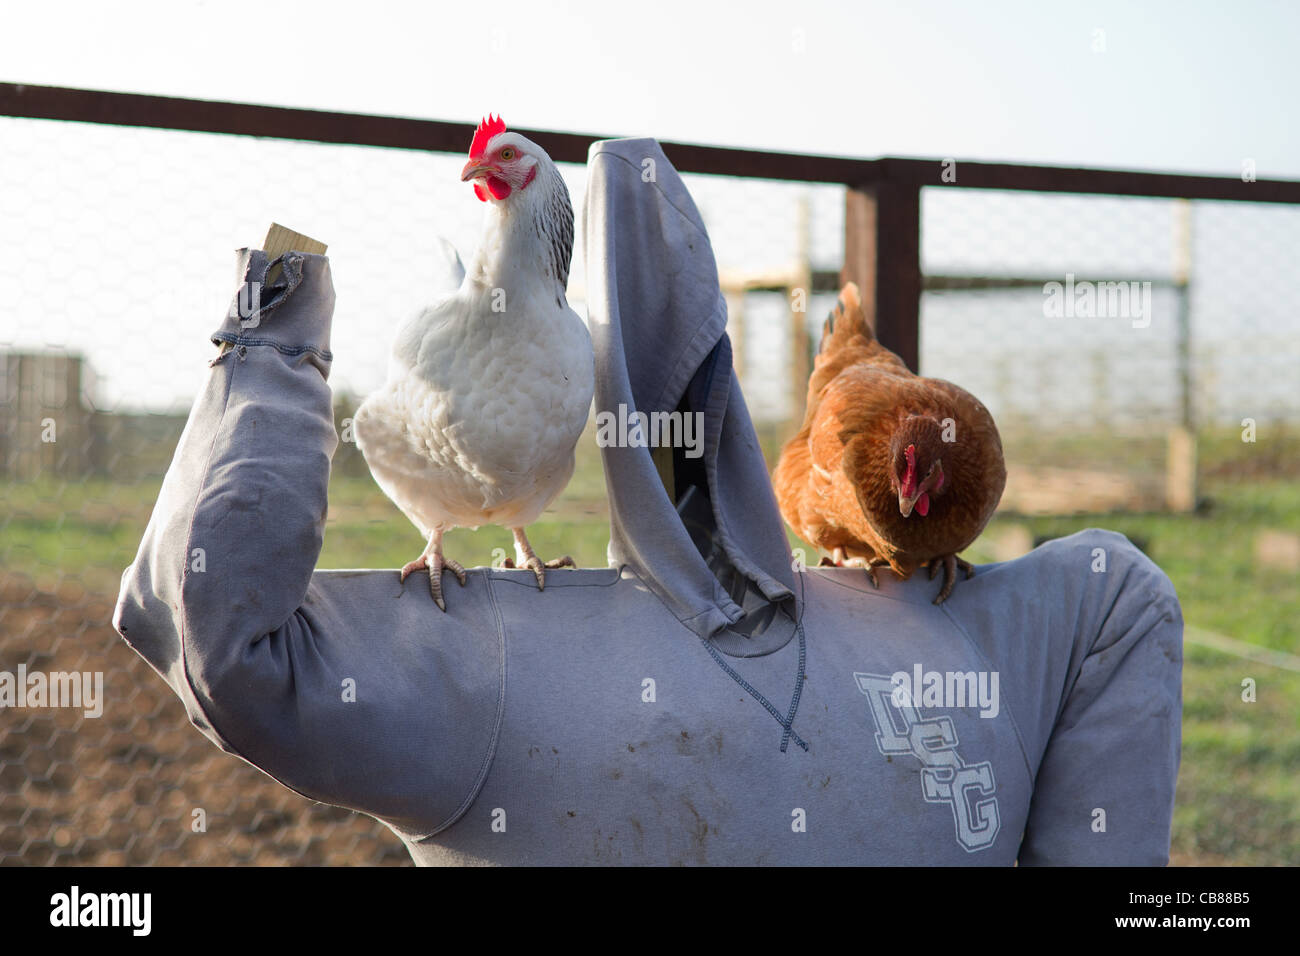 Two chickens stood on a scarecrow - Stock Image